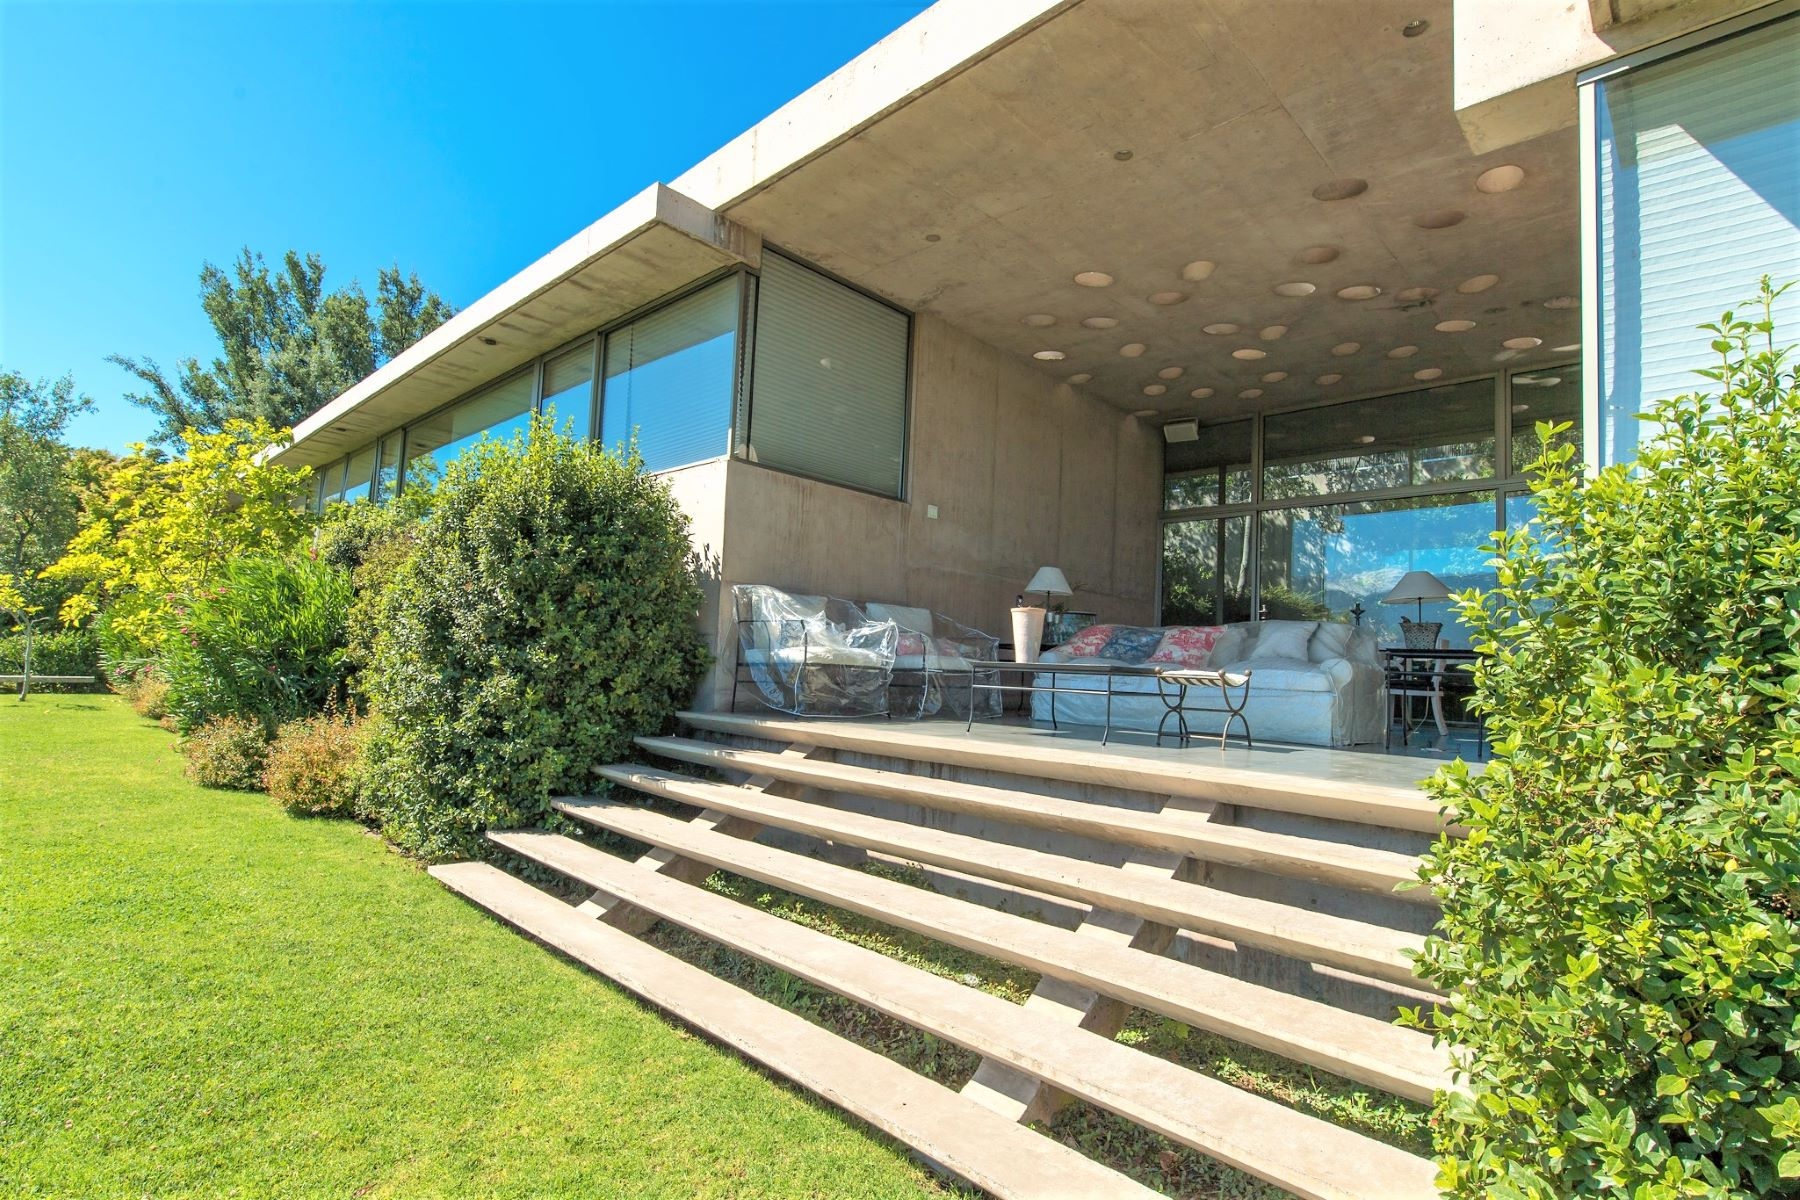 Частный односемейный дом для того Продажа на Exceptional Home with Unique and Modern Architecture - La Dehesa Lo Barnechea, Santiago, Region Metropolitana De Santiago Чили